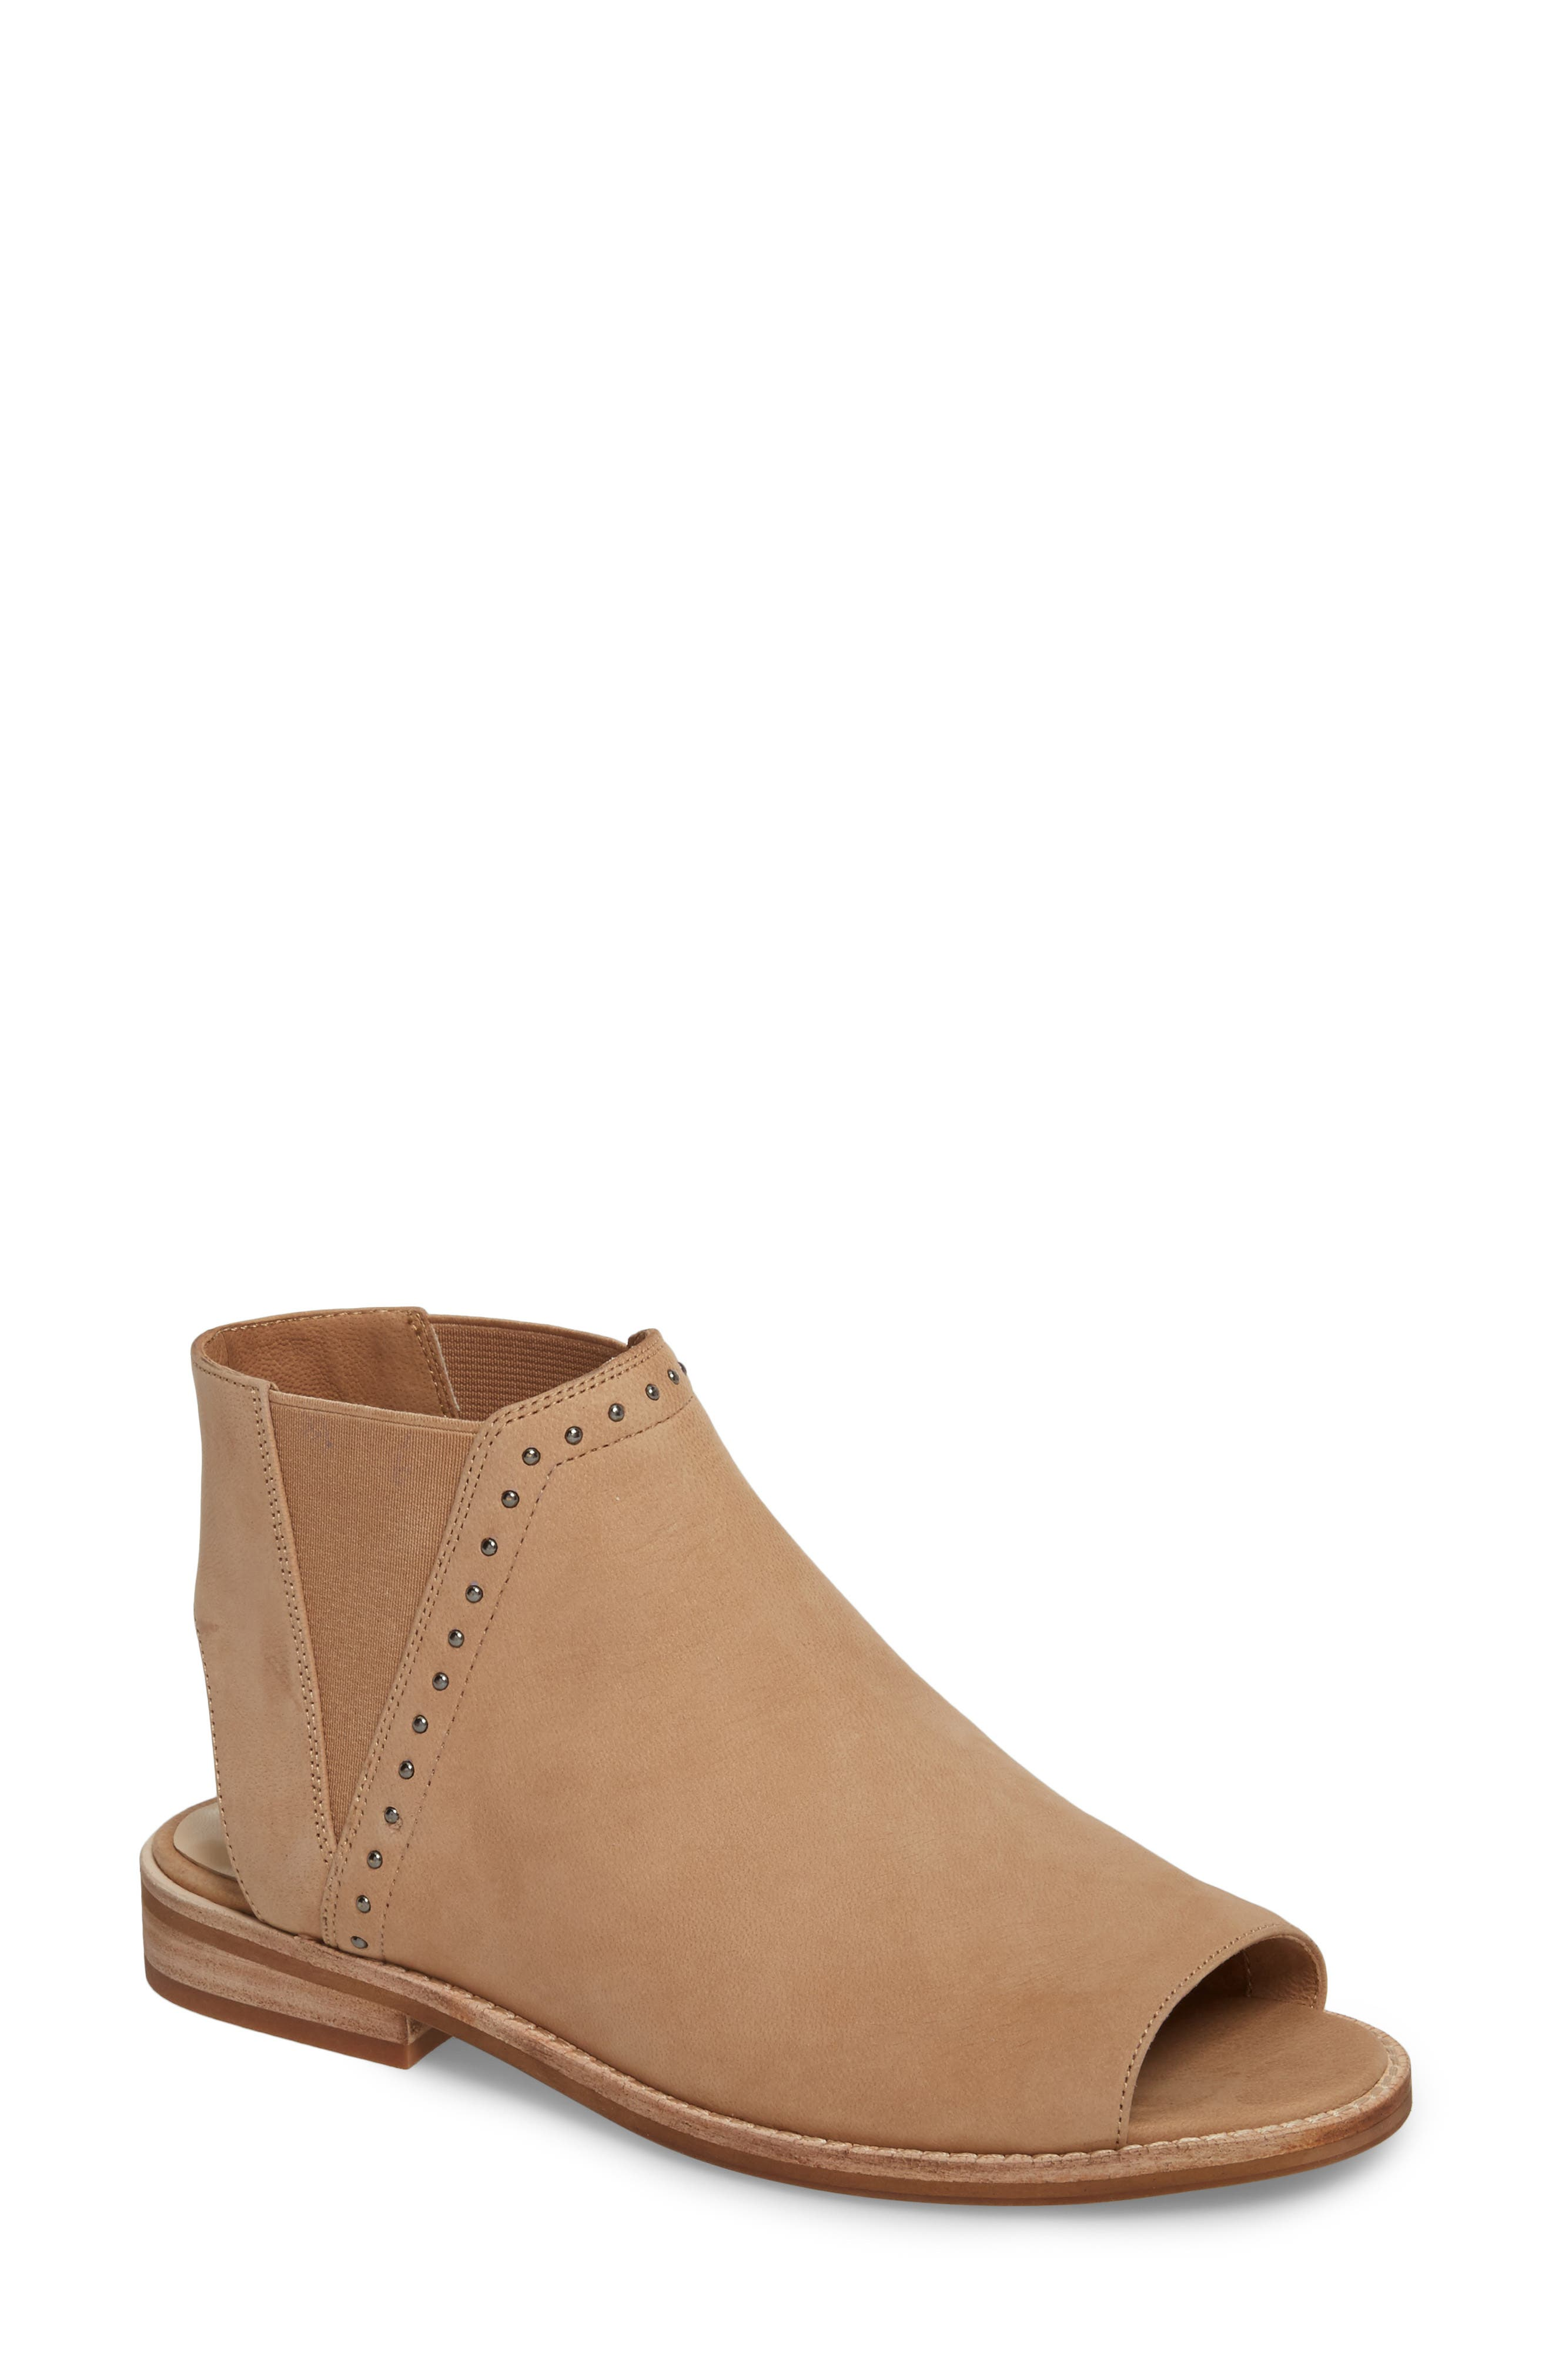 Birty Bootie,                         Main,                         color, Dusty Taupe